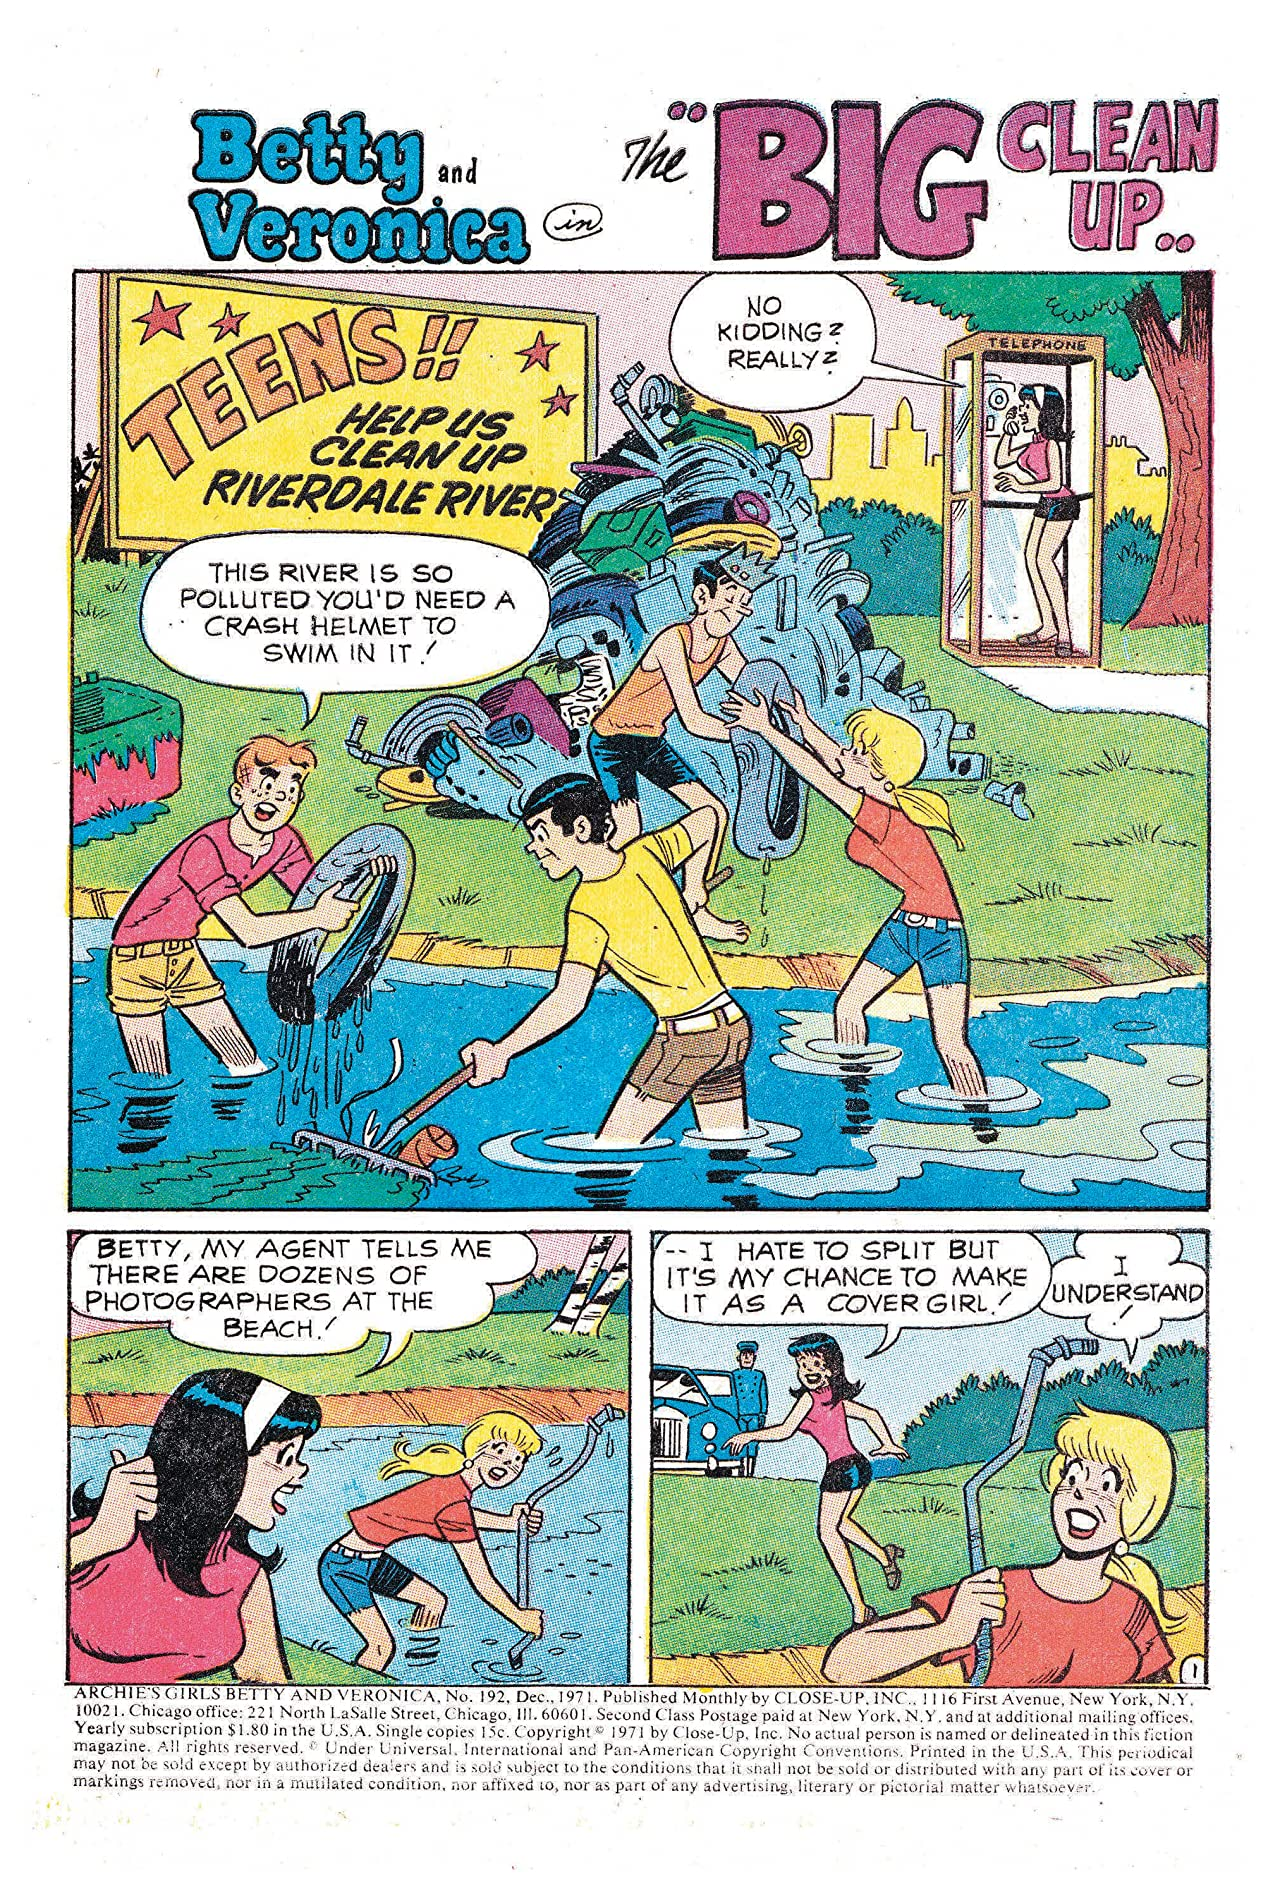 Archie's Girls Betty & Veronica No.192